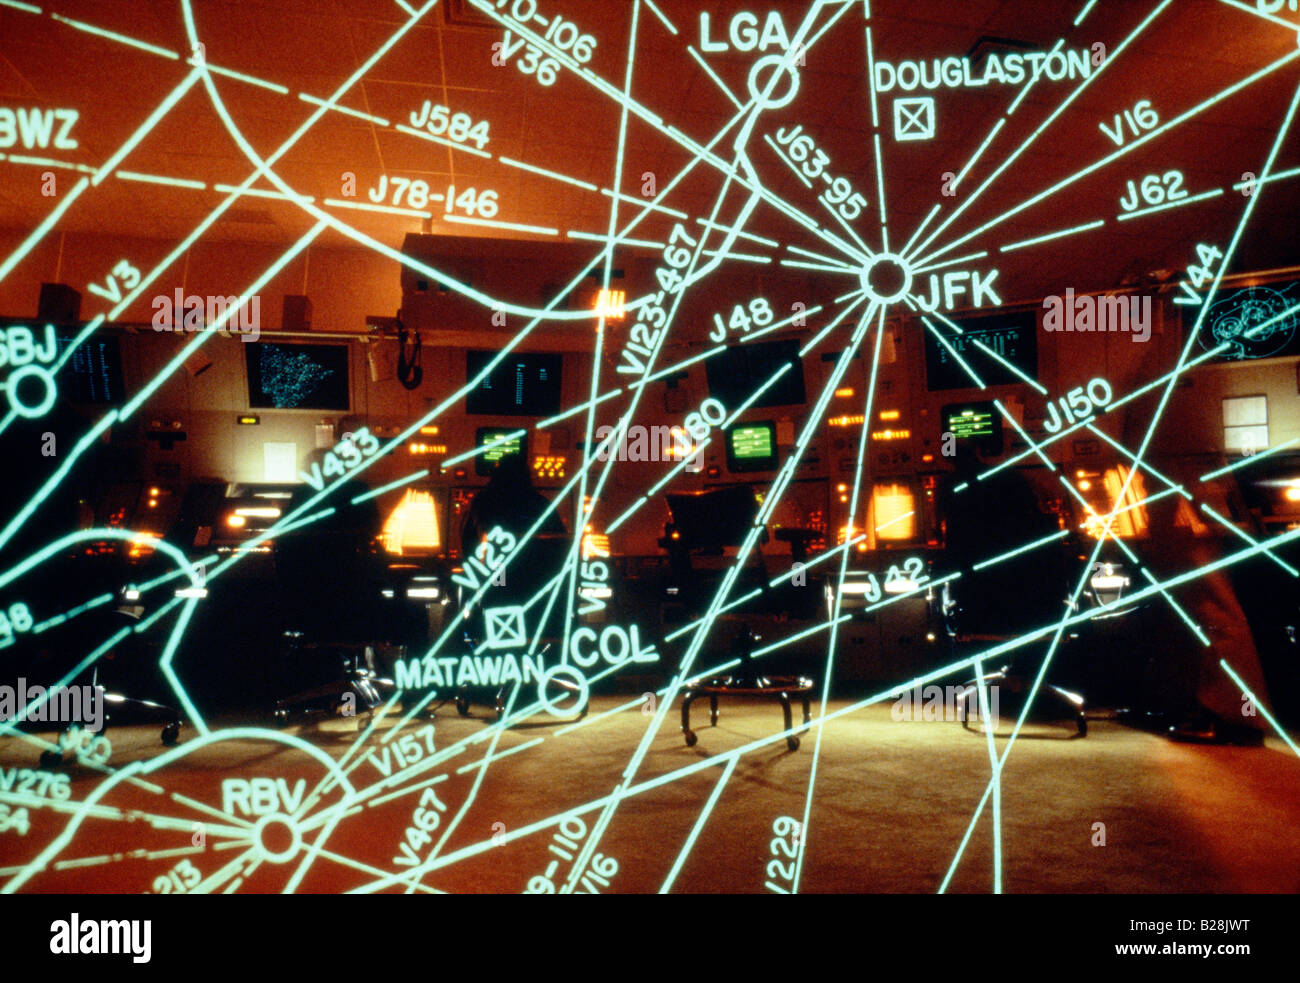 Multiple exposure of the TRACON Air traffic control center, Long Island, New York - Stock Image